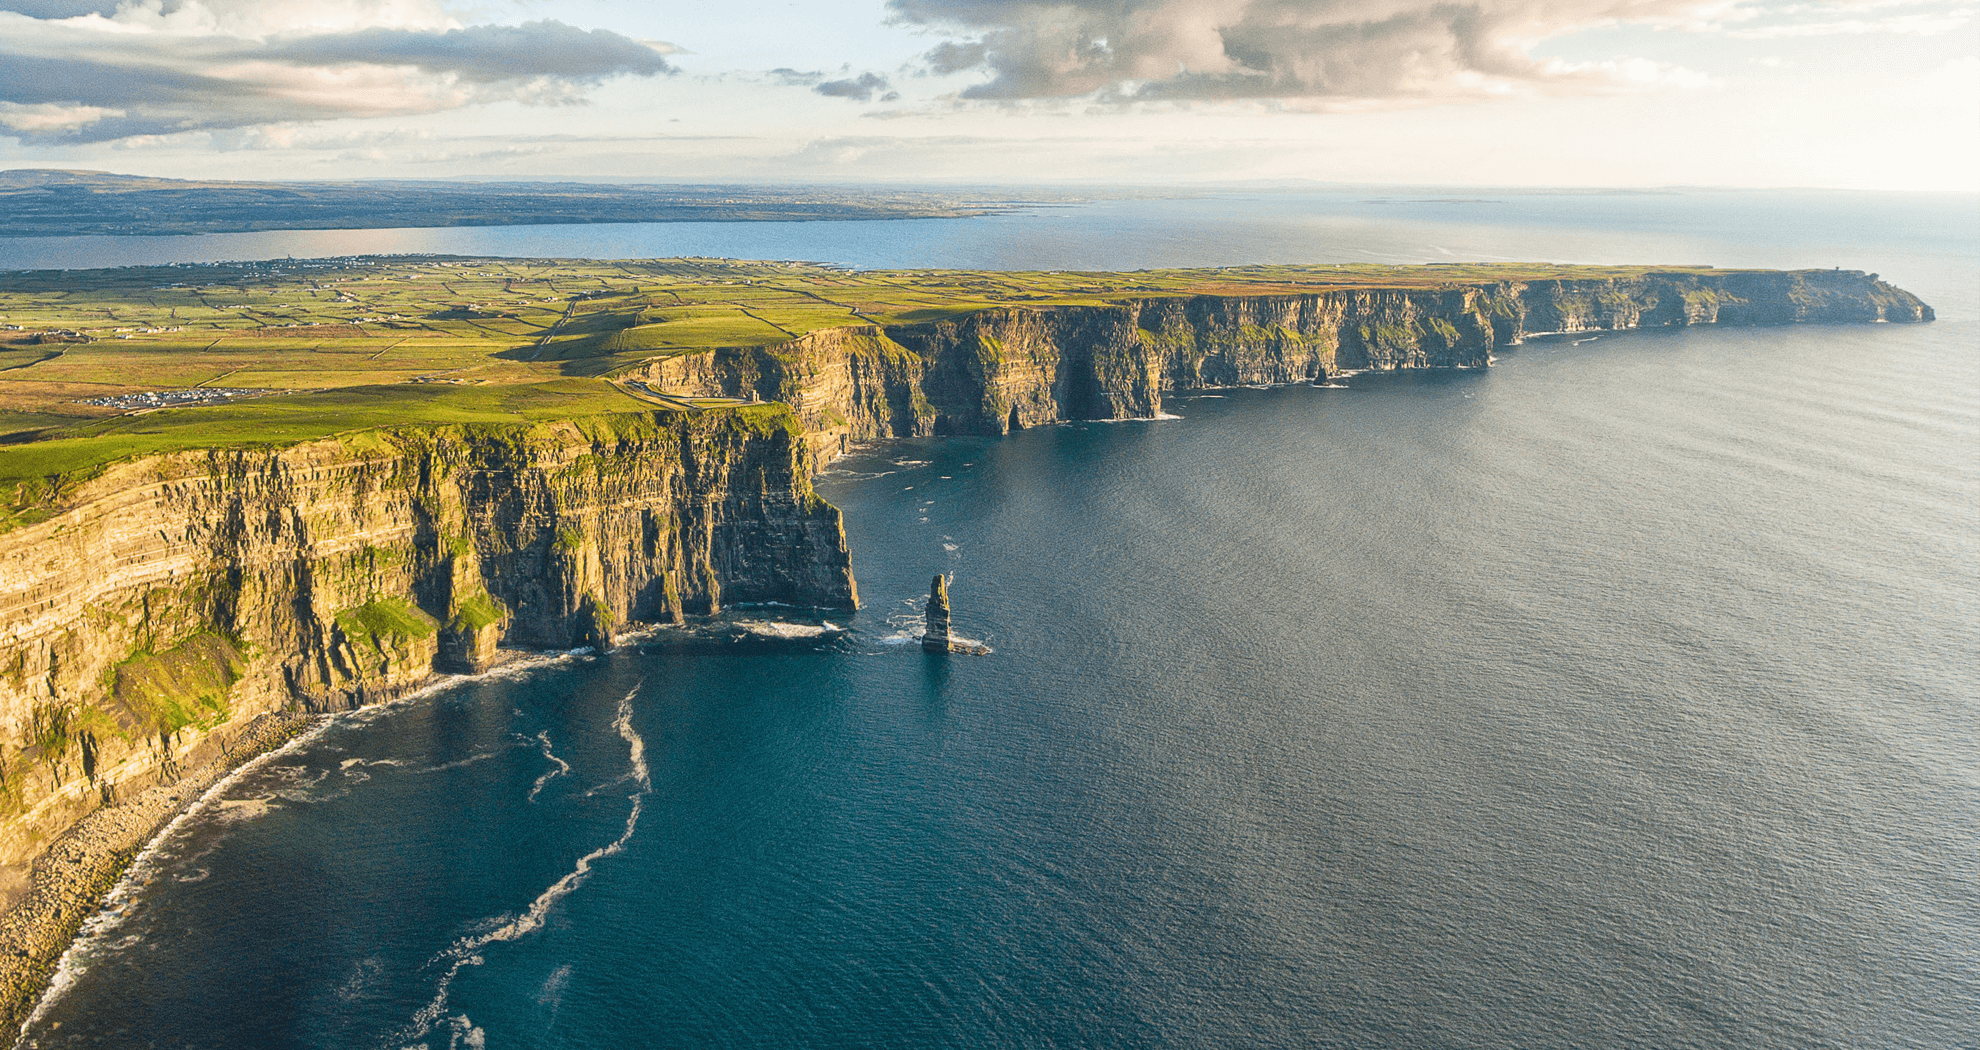 A wide aerial view of the Cliffs of Moher.